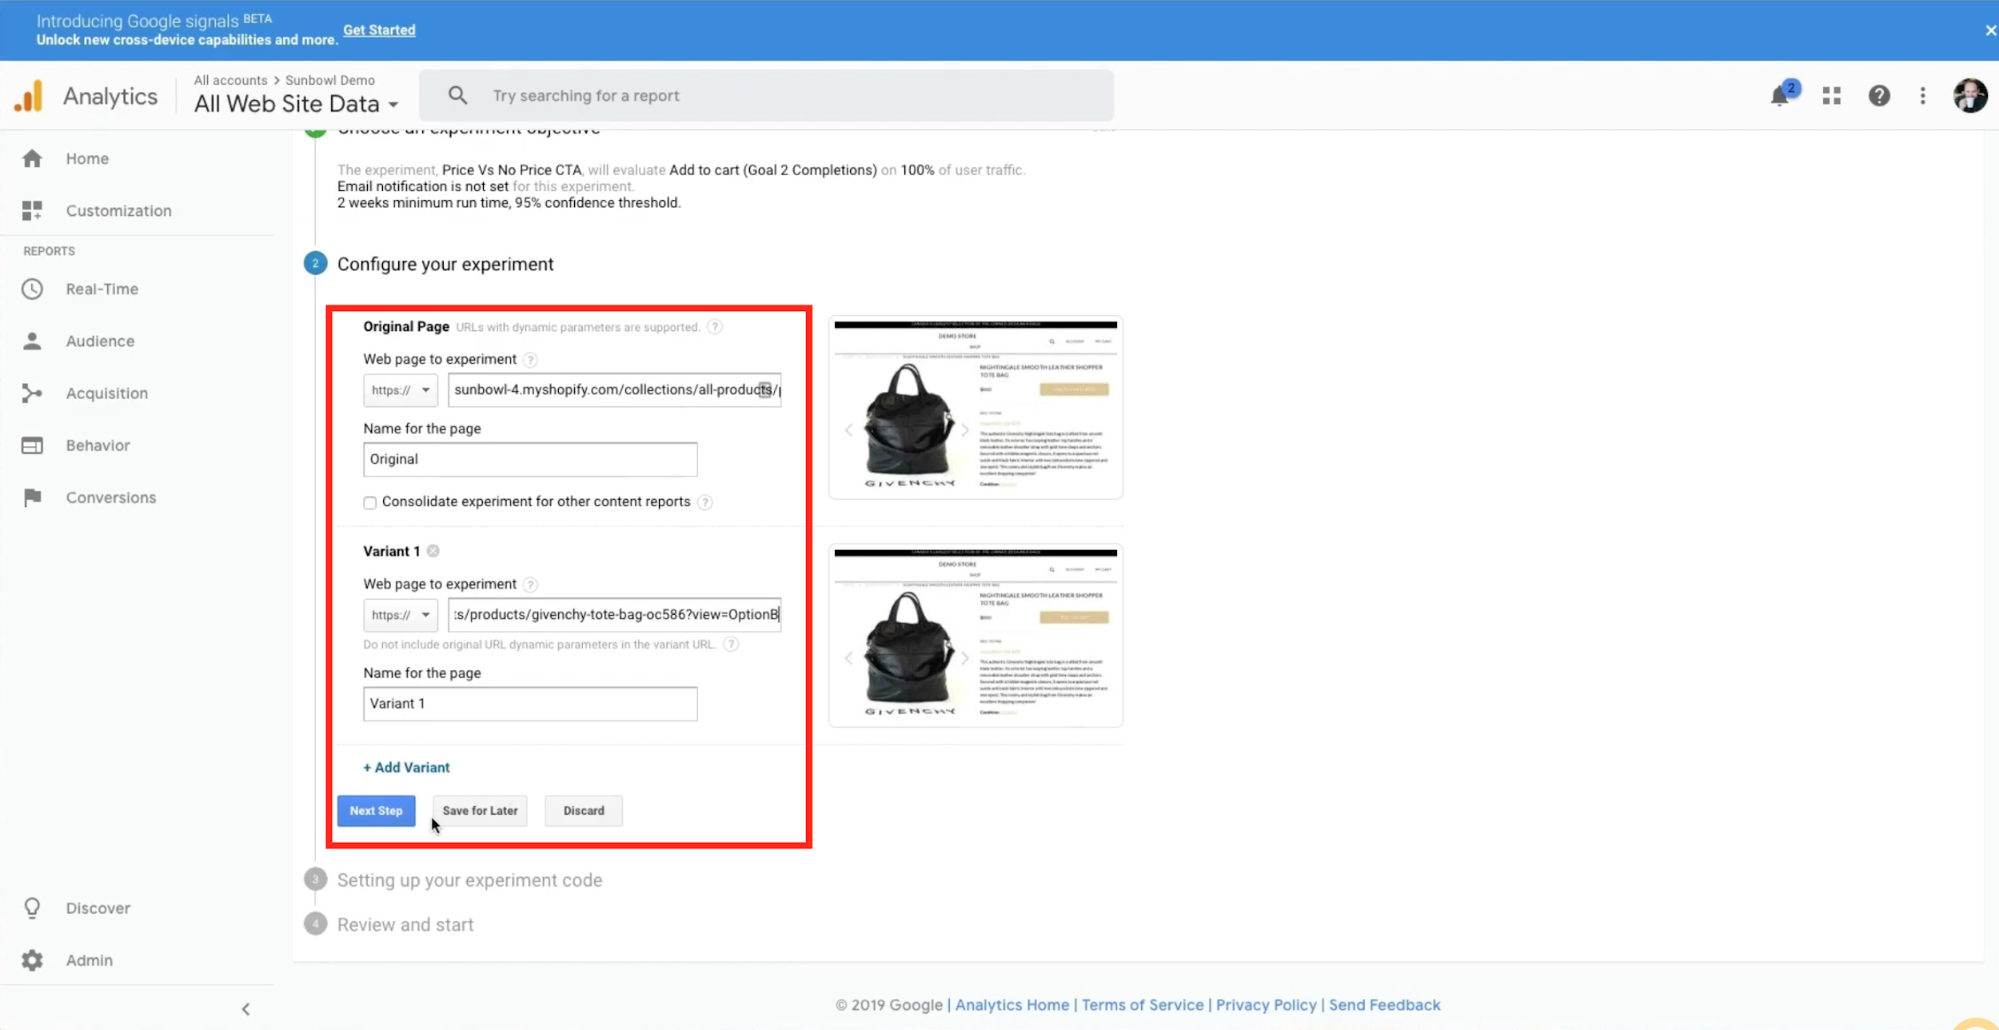 Merchant is adding the two Shopify product variants to Google Analytics for testing